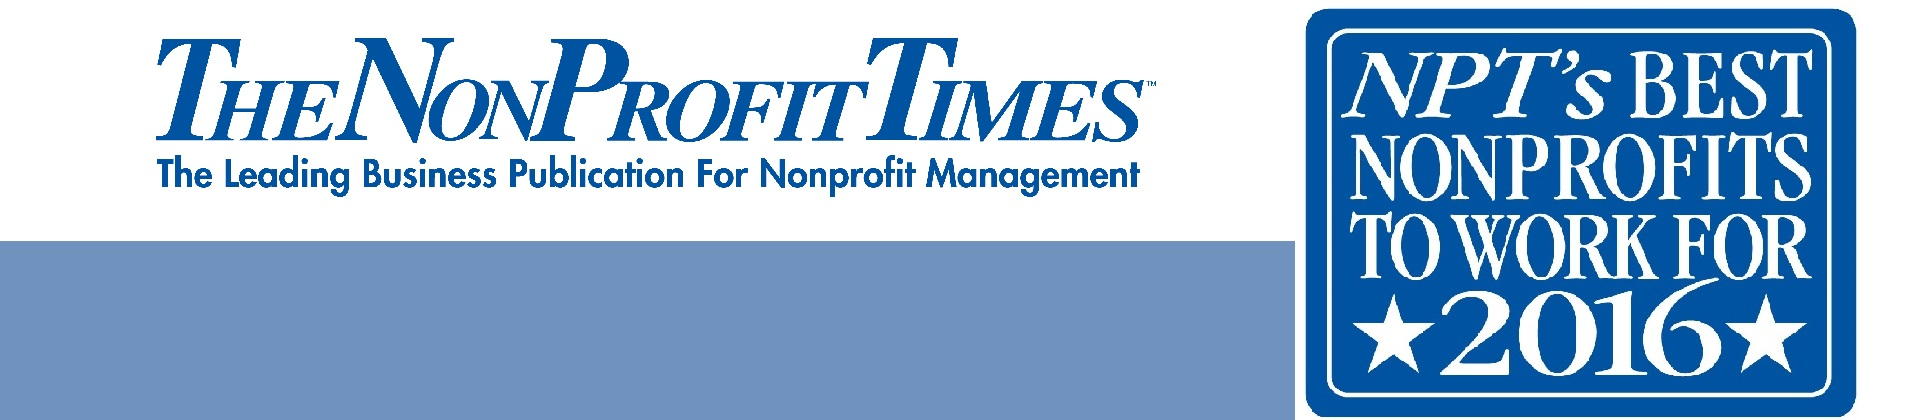 CTR Awarded NonProfit Times Best Nonprofits To Work For